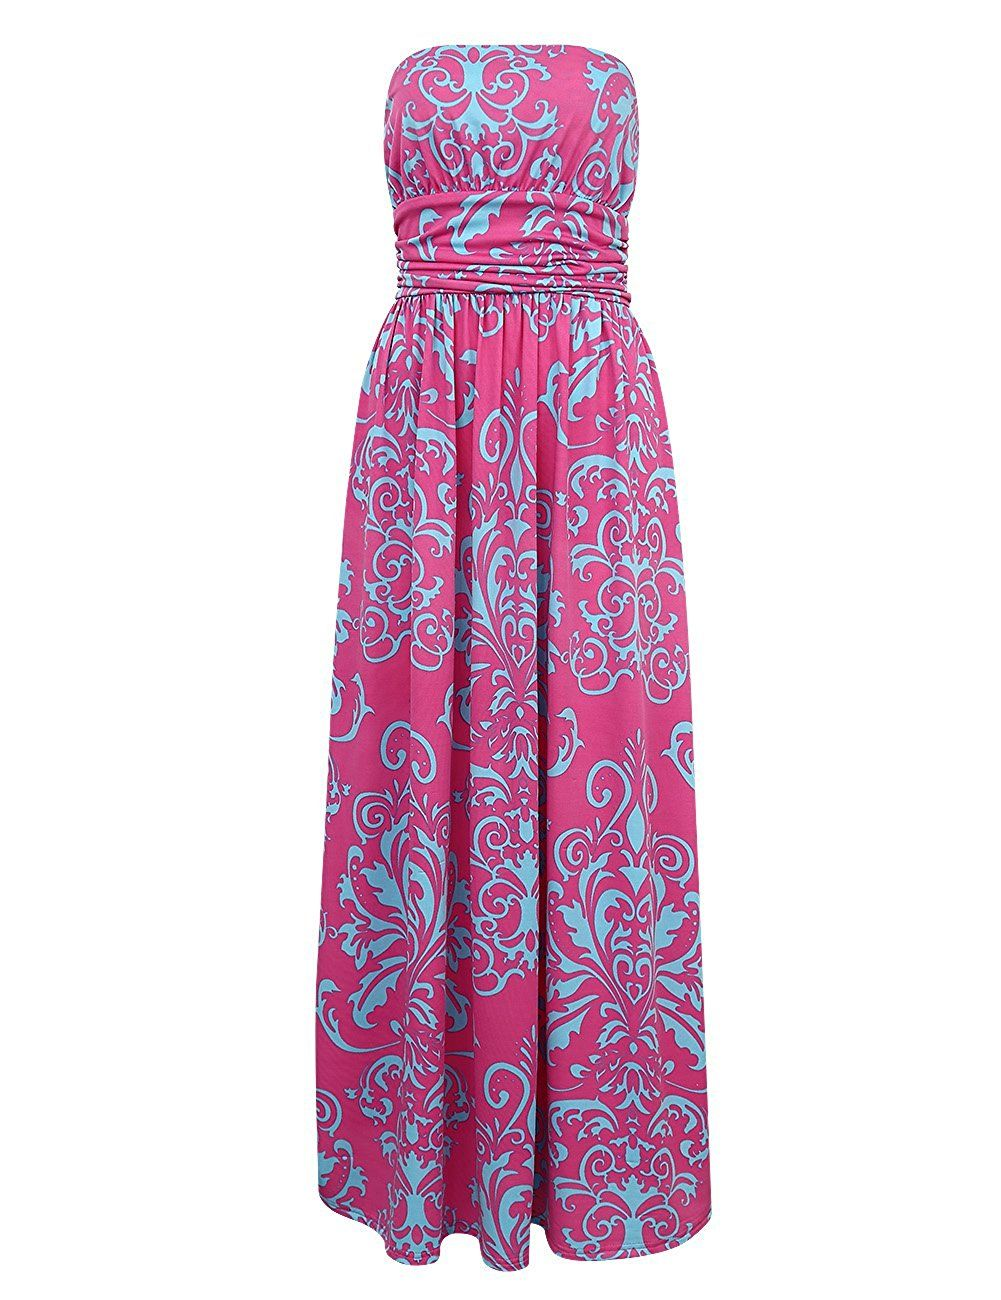 Beautiful long summer dress very comfortable and cute you could